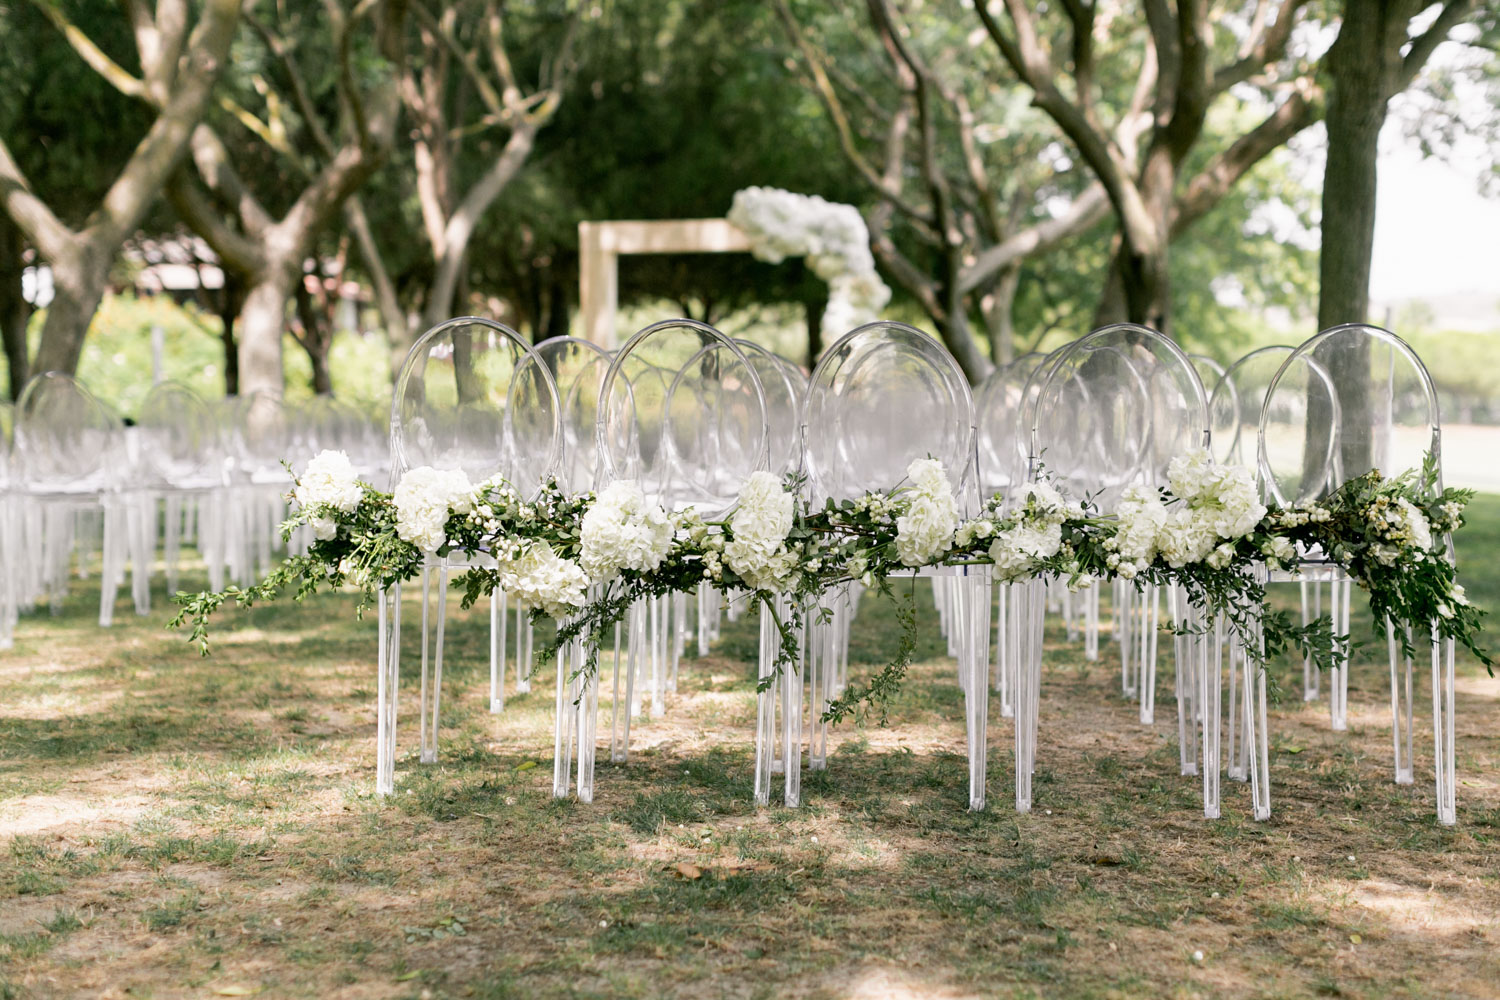 Perspex chair with white flowers wedding Sotogrande Cancha II